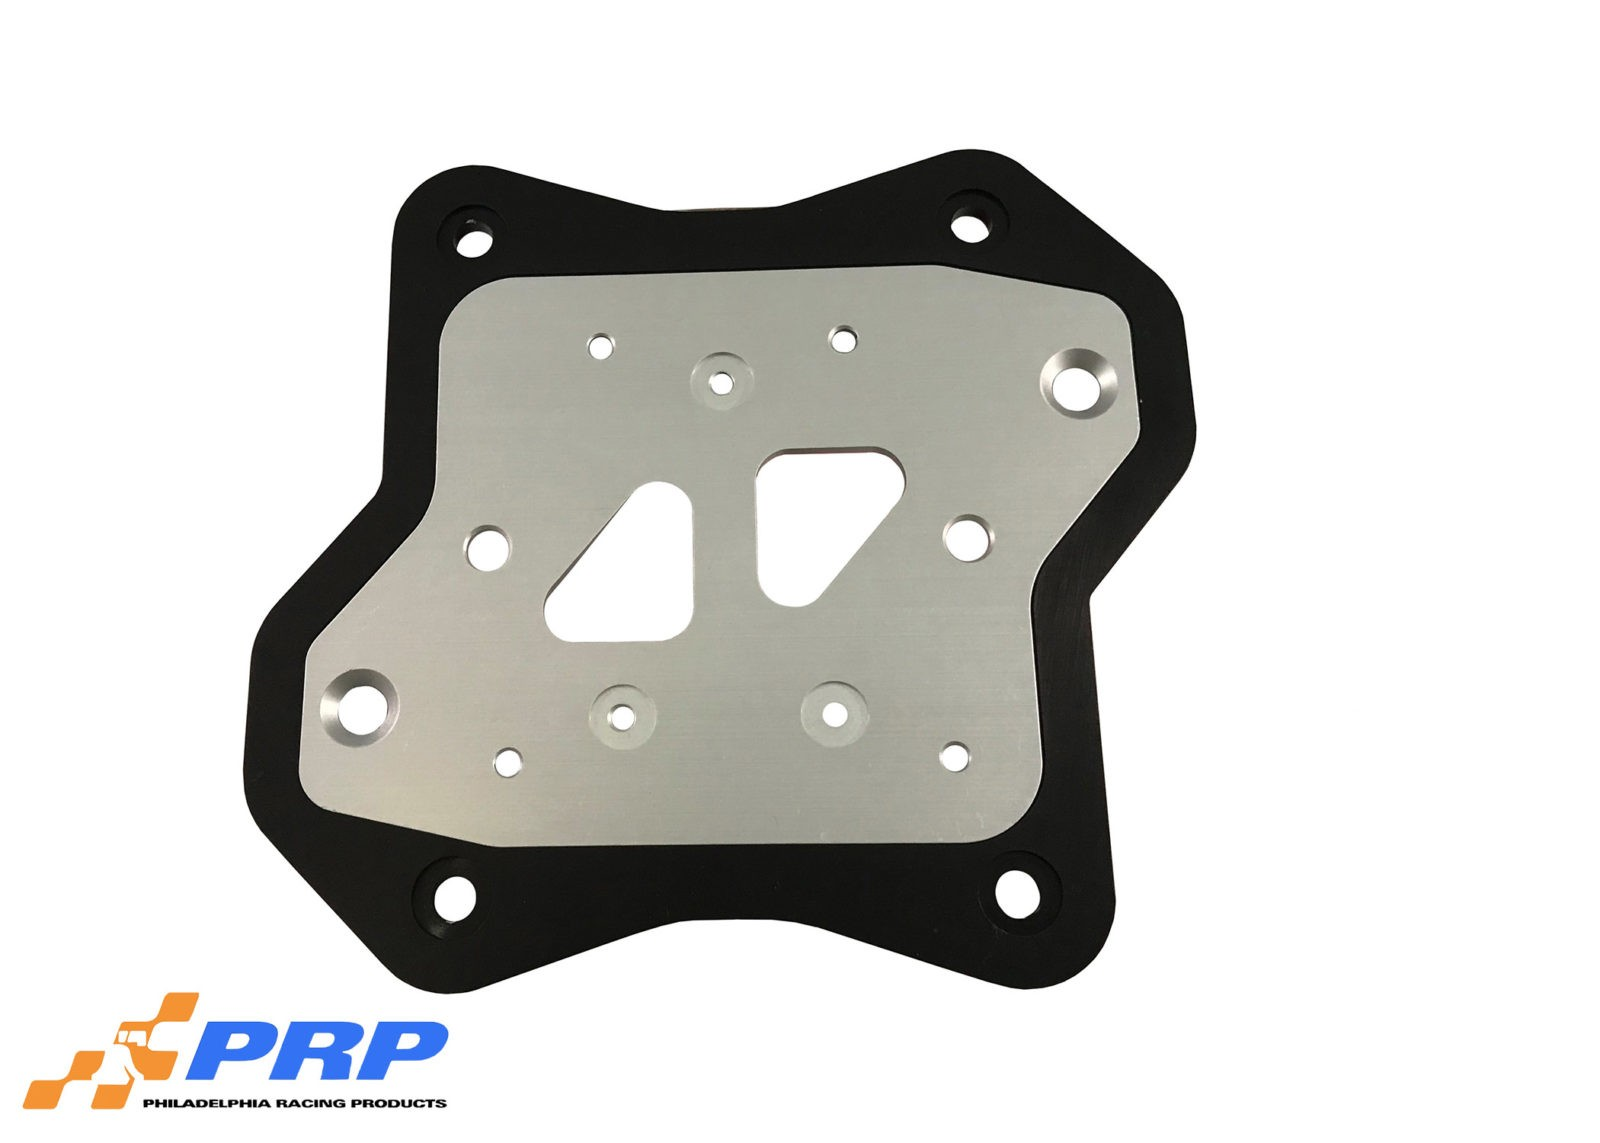 hight resolution of silver and black msd coil mounting bracket made by prp racing products